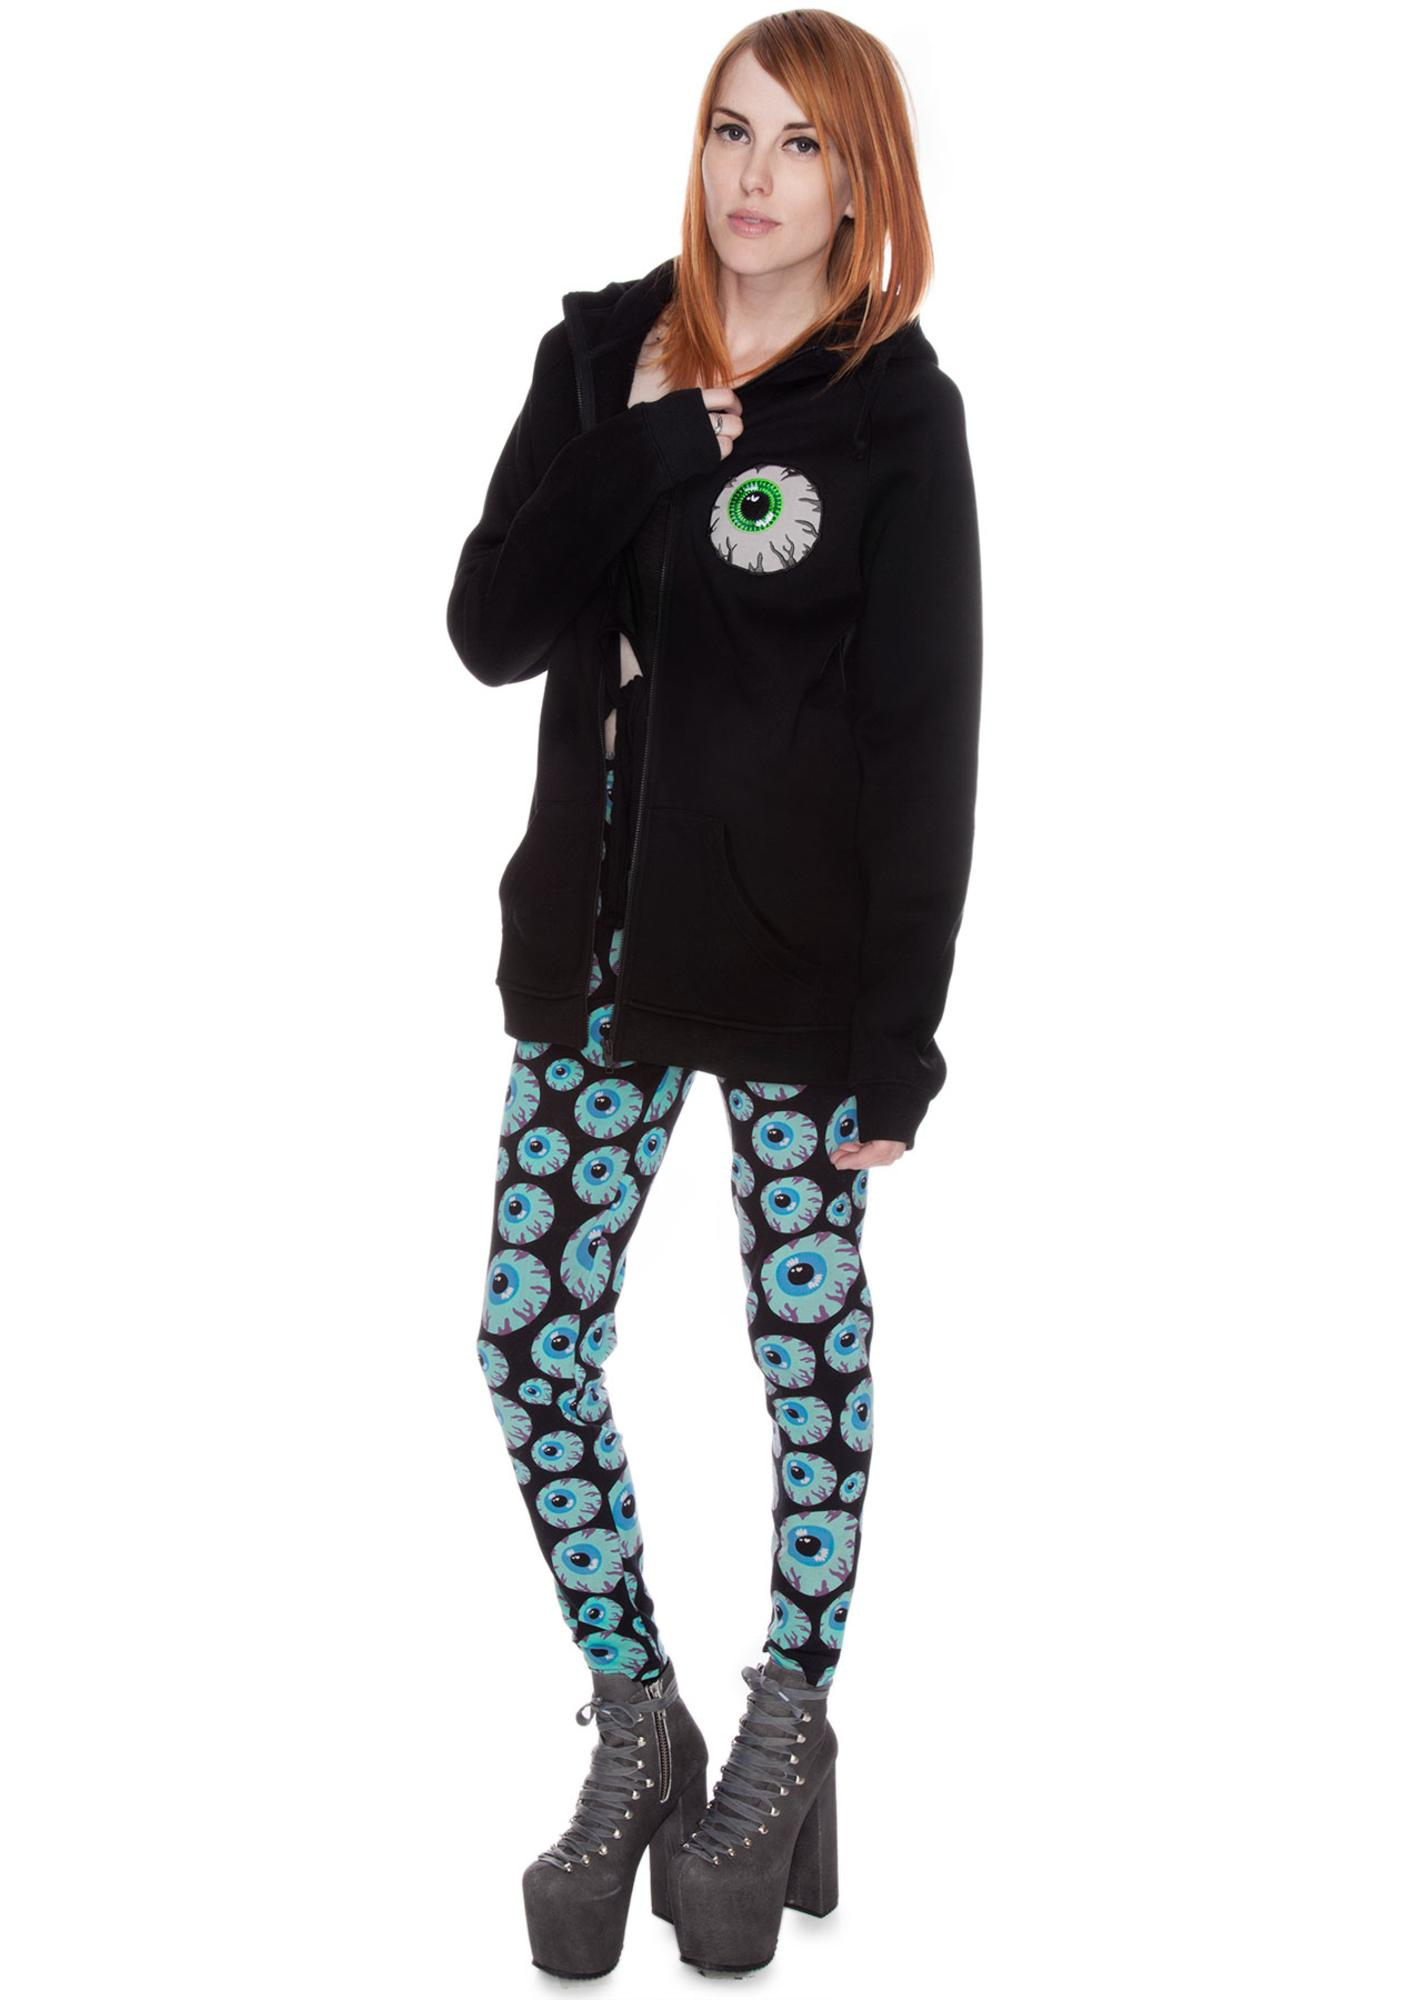 Mishka Keep Watch Zip Up Hoodie